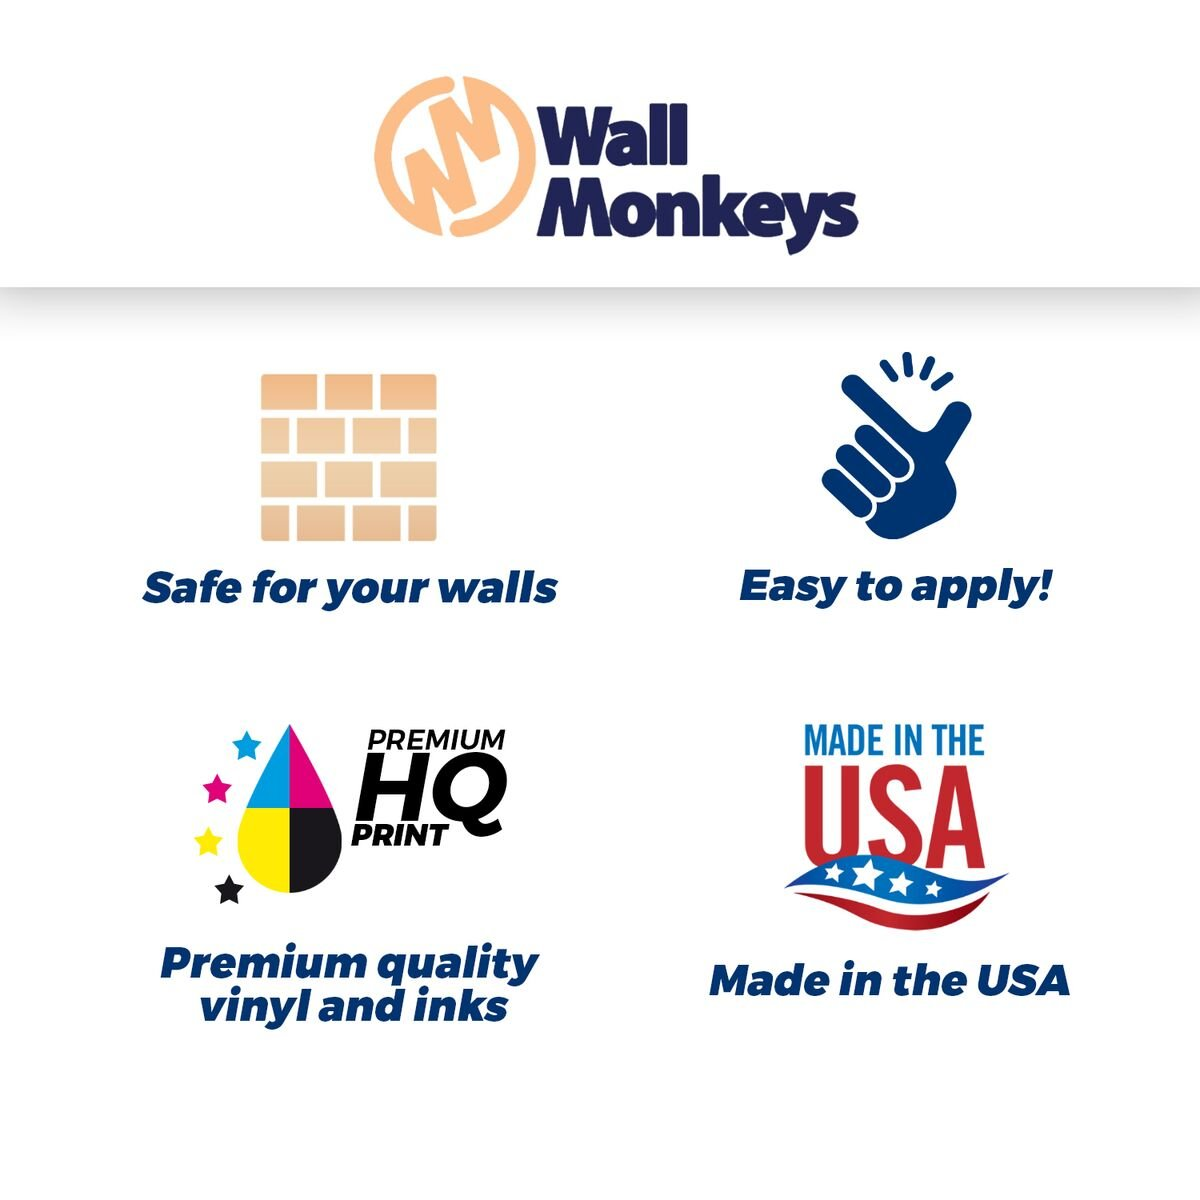 Wallmonkeys WM360429 Bridge with Locks Wall Decal Peel and Stick Graphic (18 in W x 12 in H) by Wallmonkeys (Image #4)